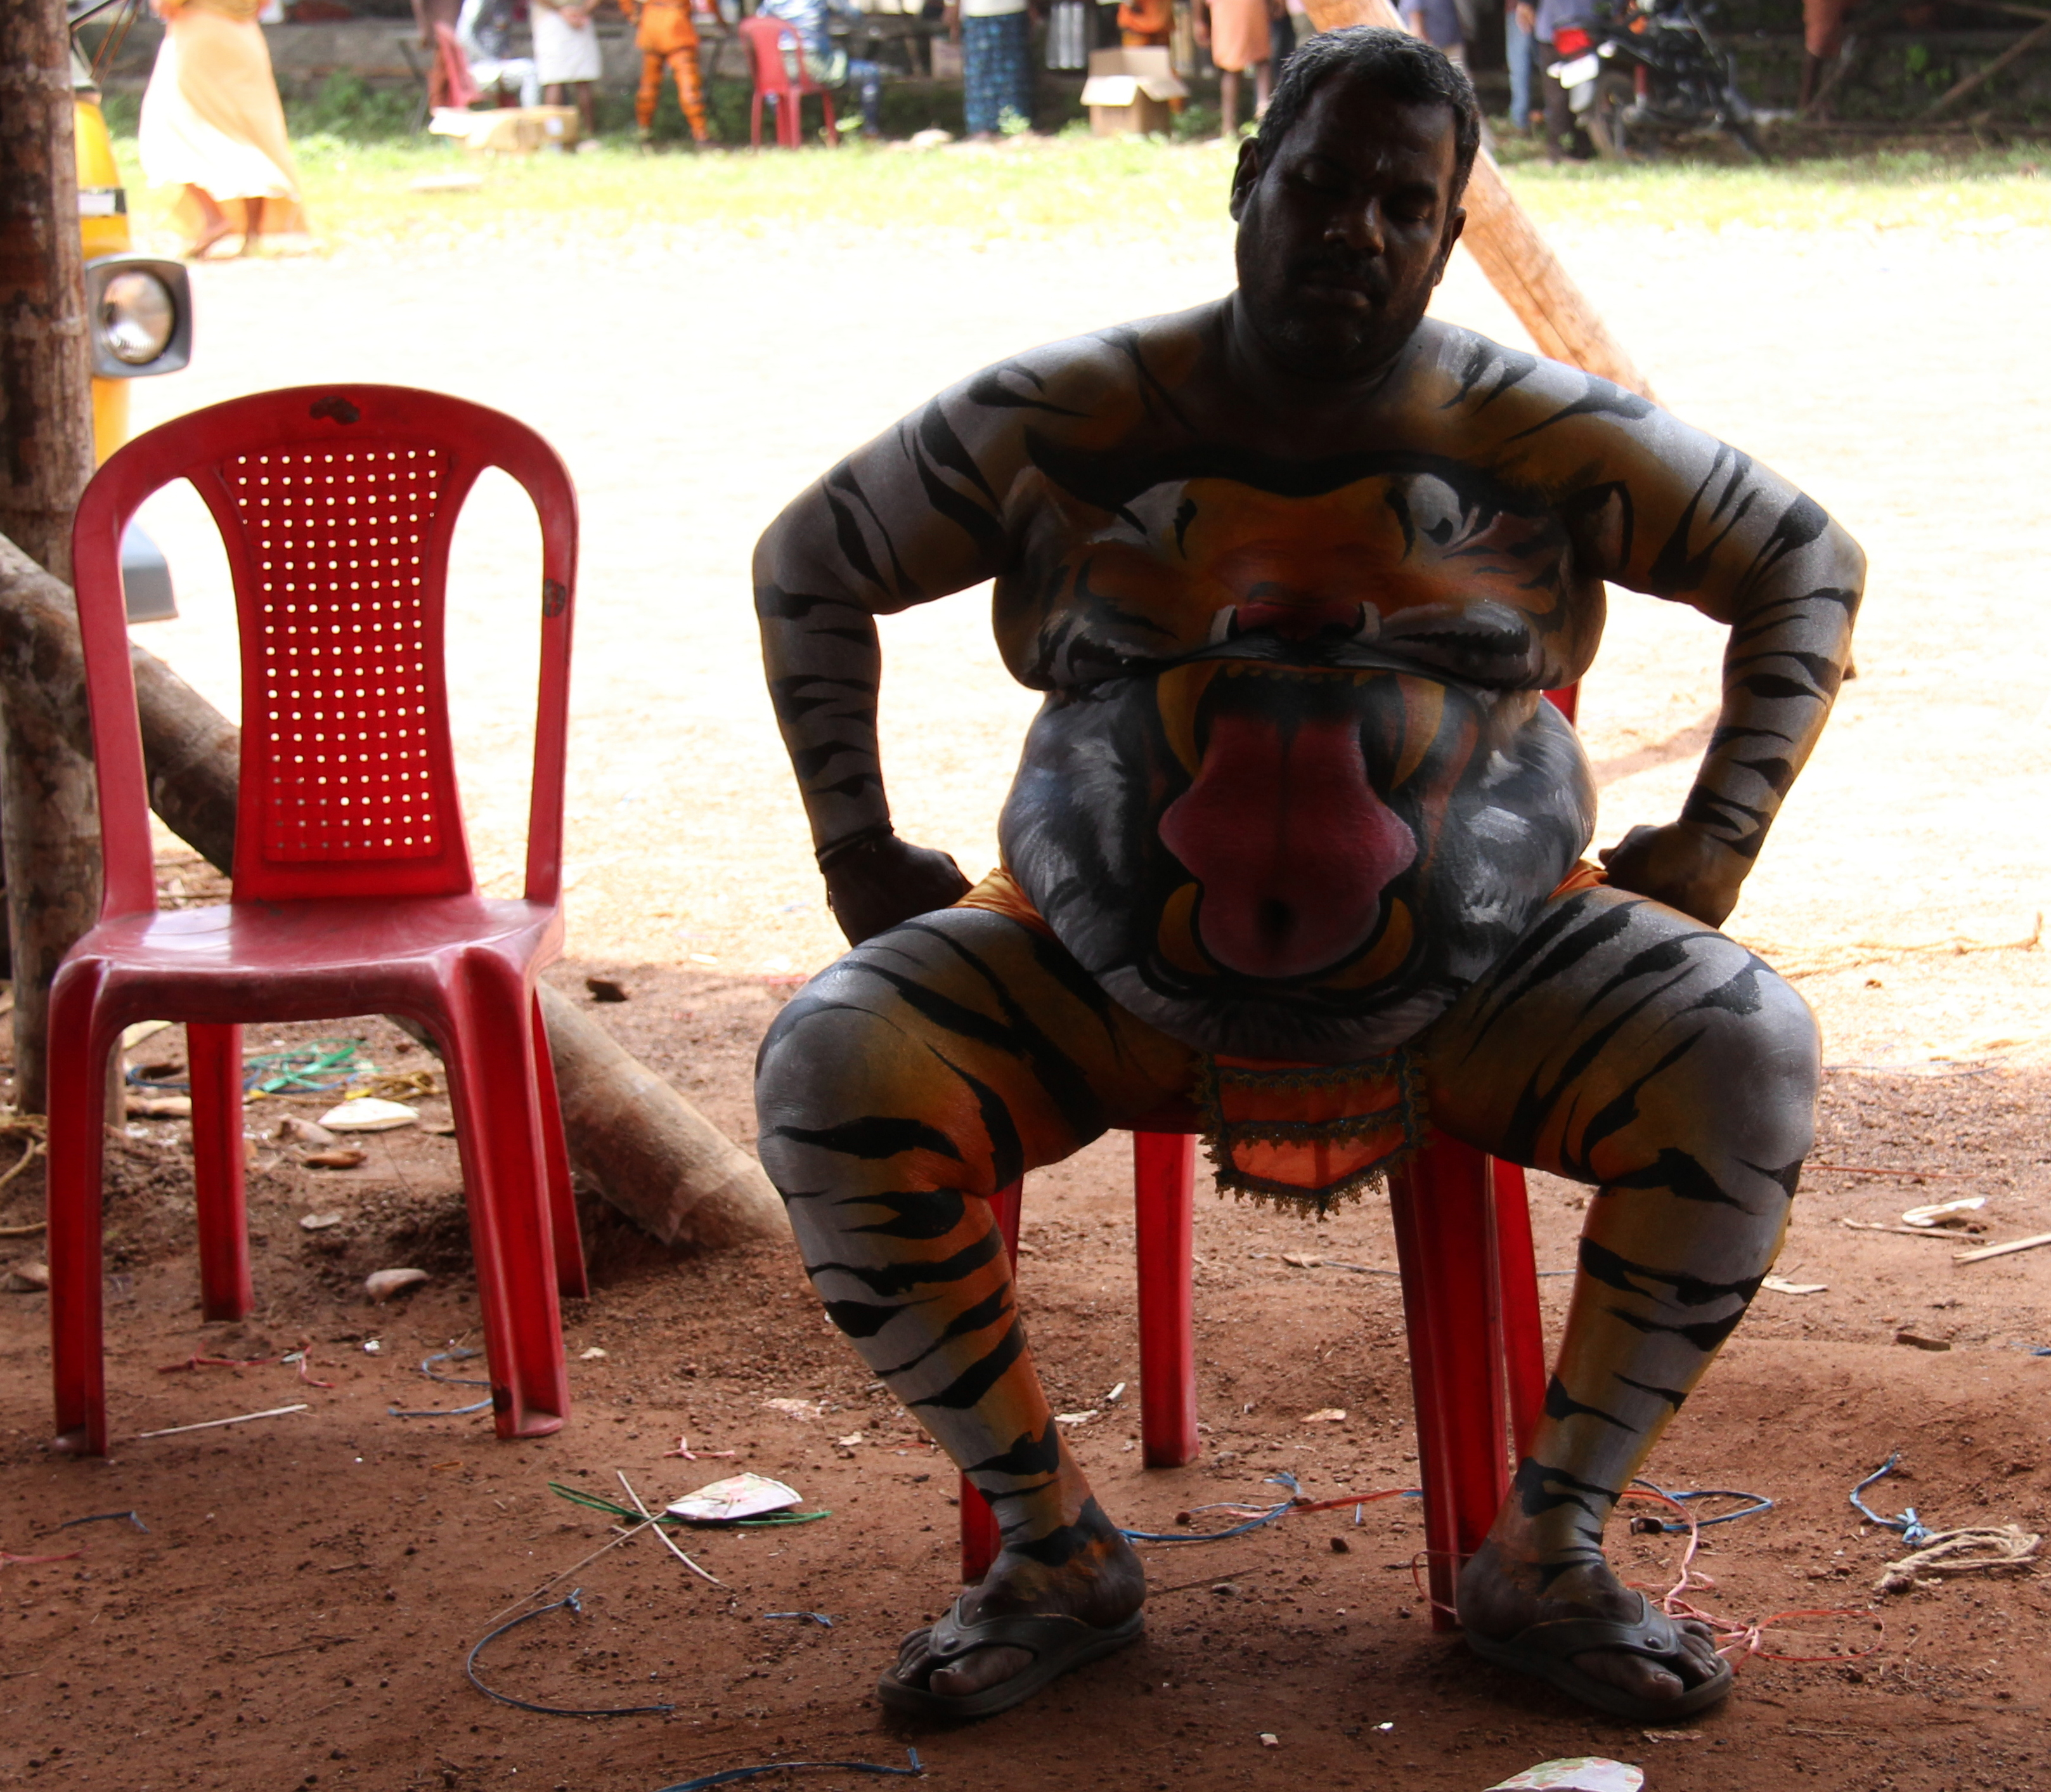 For it was hard being a Pulikali tiger